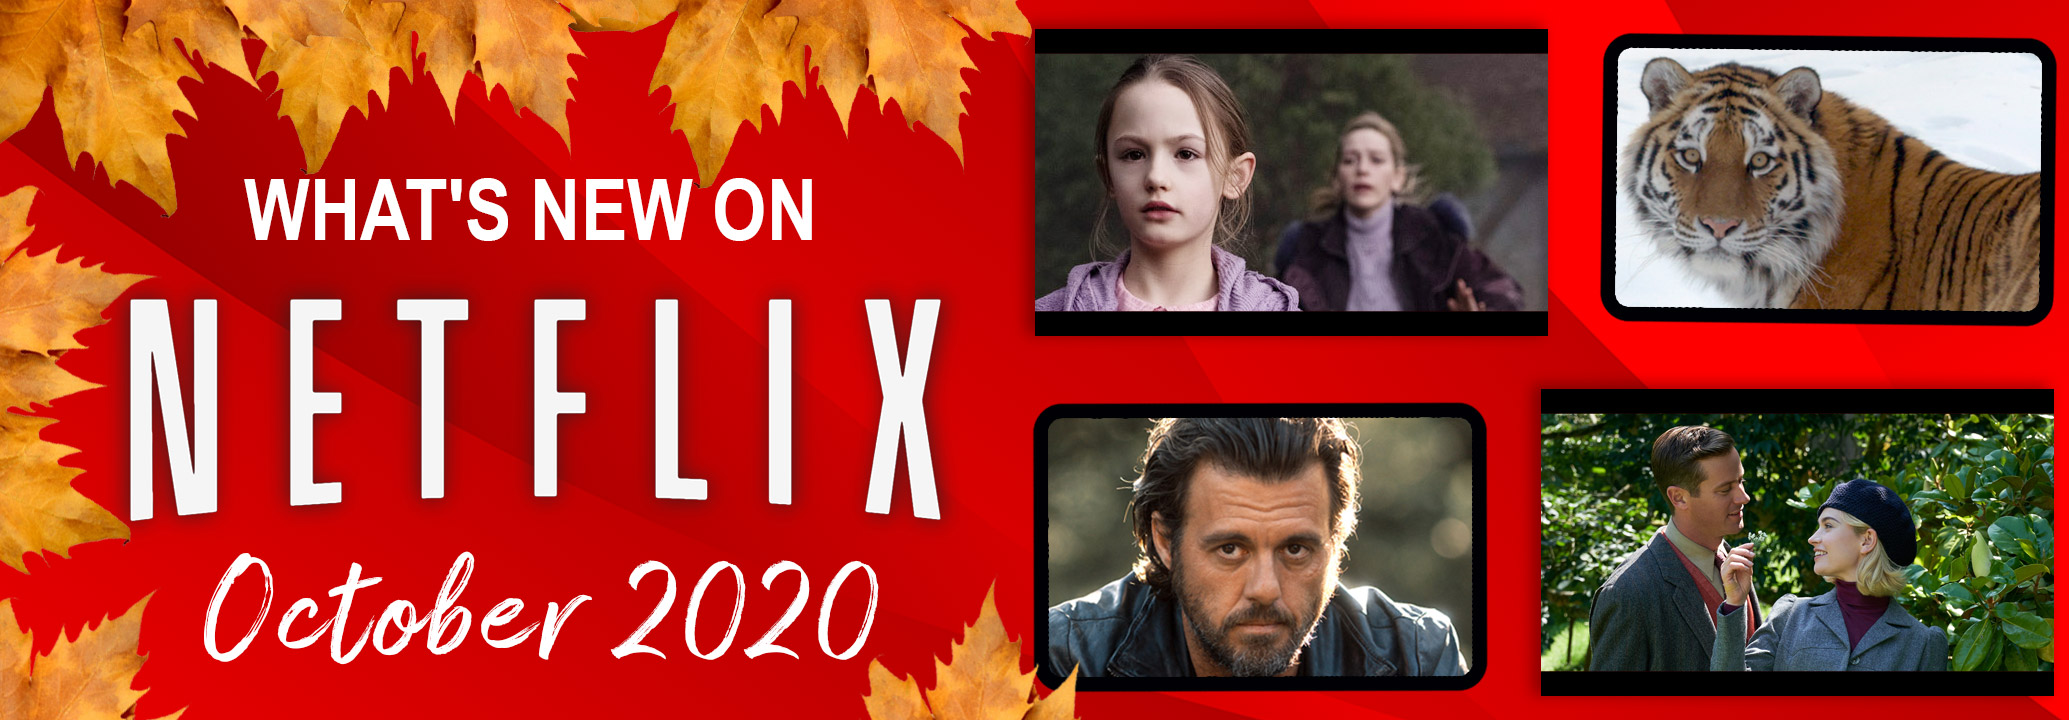 What's New on Netflix October 2020